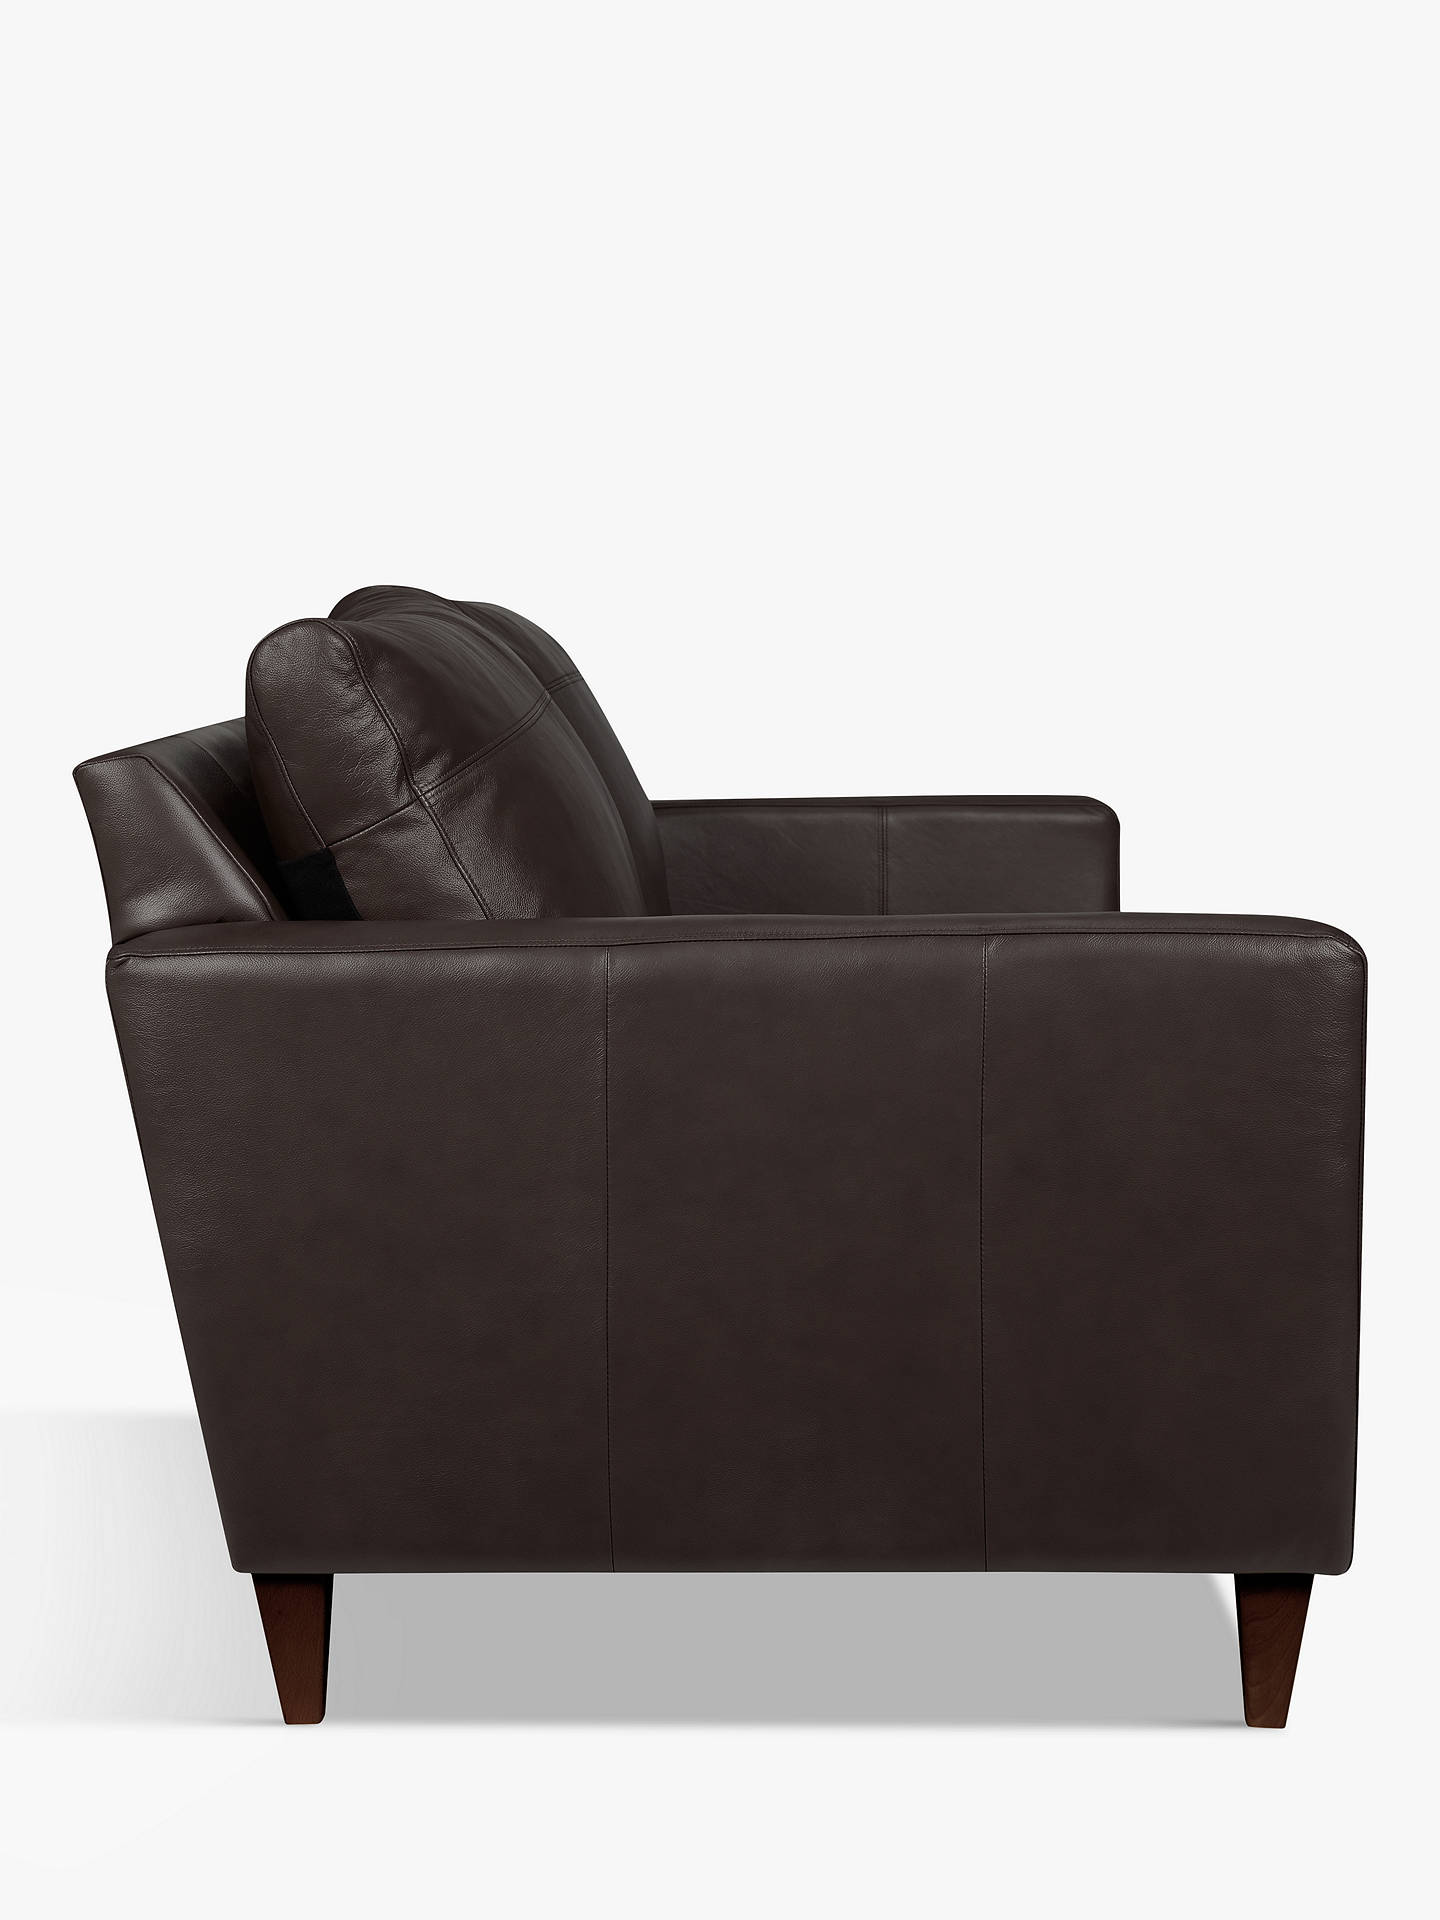 Buy John Lewis & Partners Bailey Leather Grand 4 Seater Sofa, Dark Leg, Demetra Charcoal Online at johnlewis.com